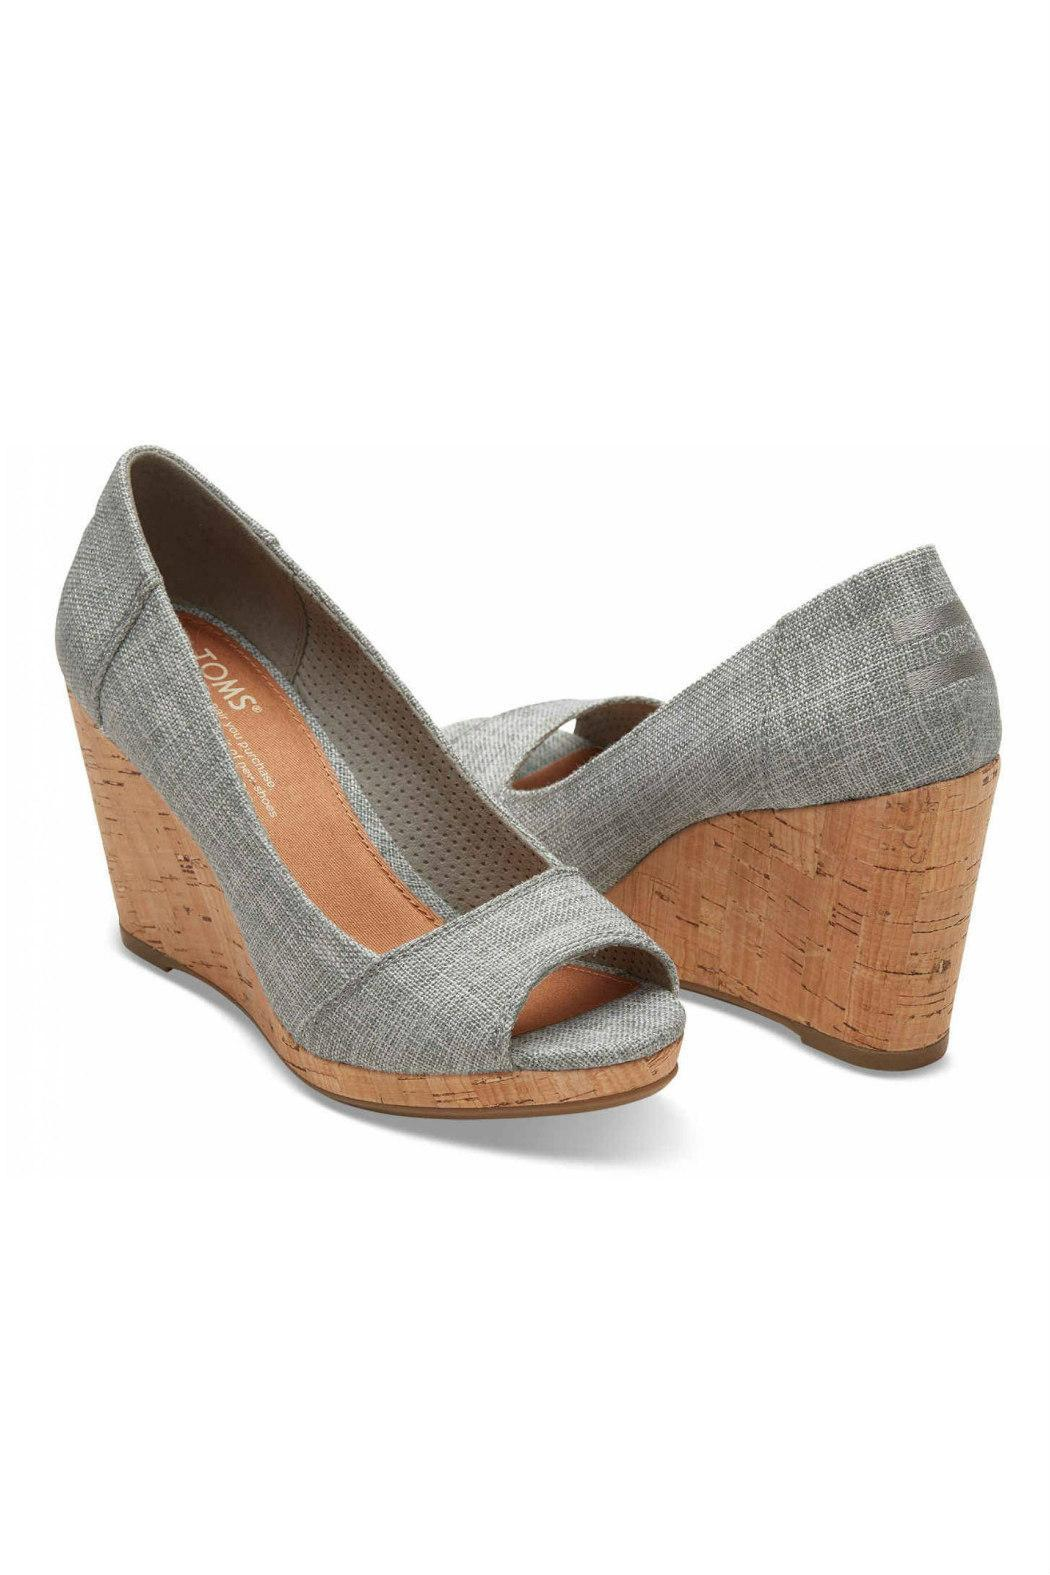 d93c3bd5fa6 TOMS Stella Peep Toe Wedges from Statesboro by Sole — Shoptiques